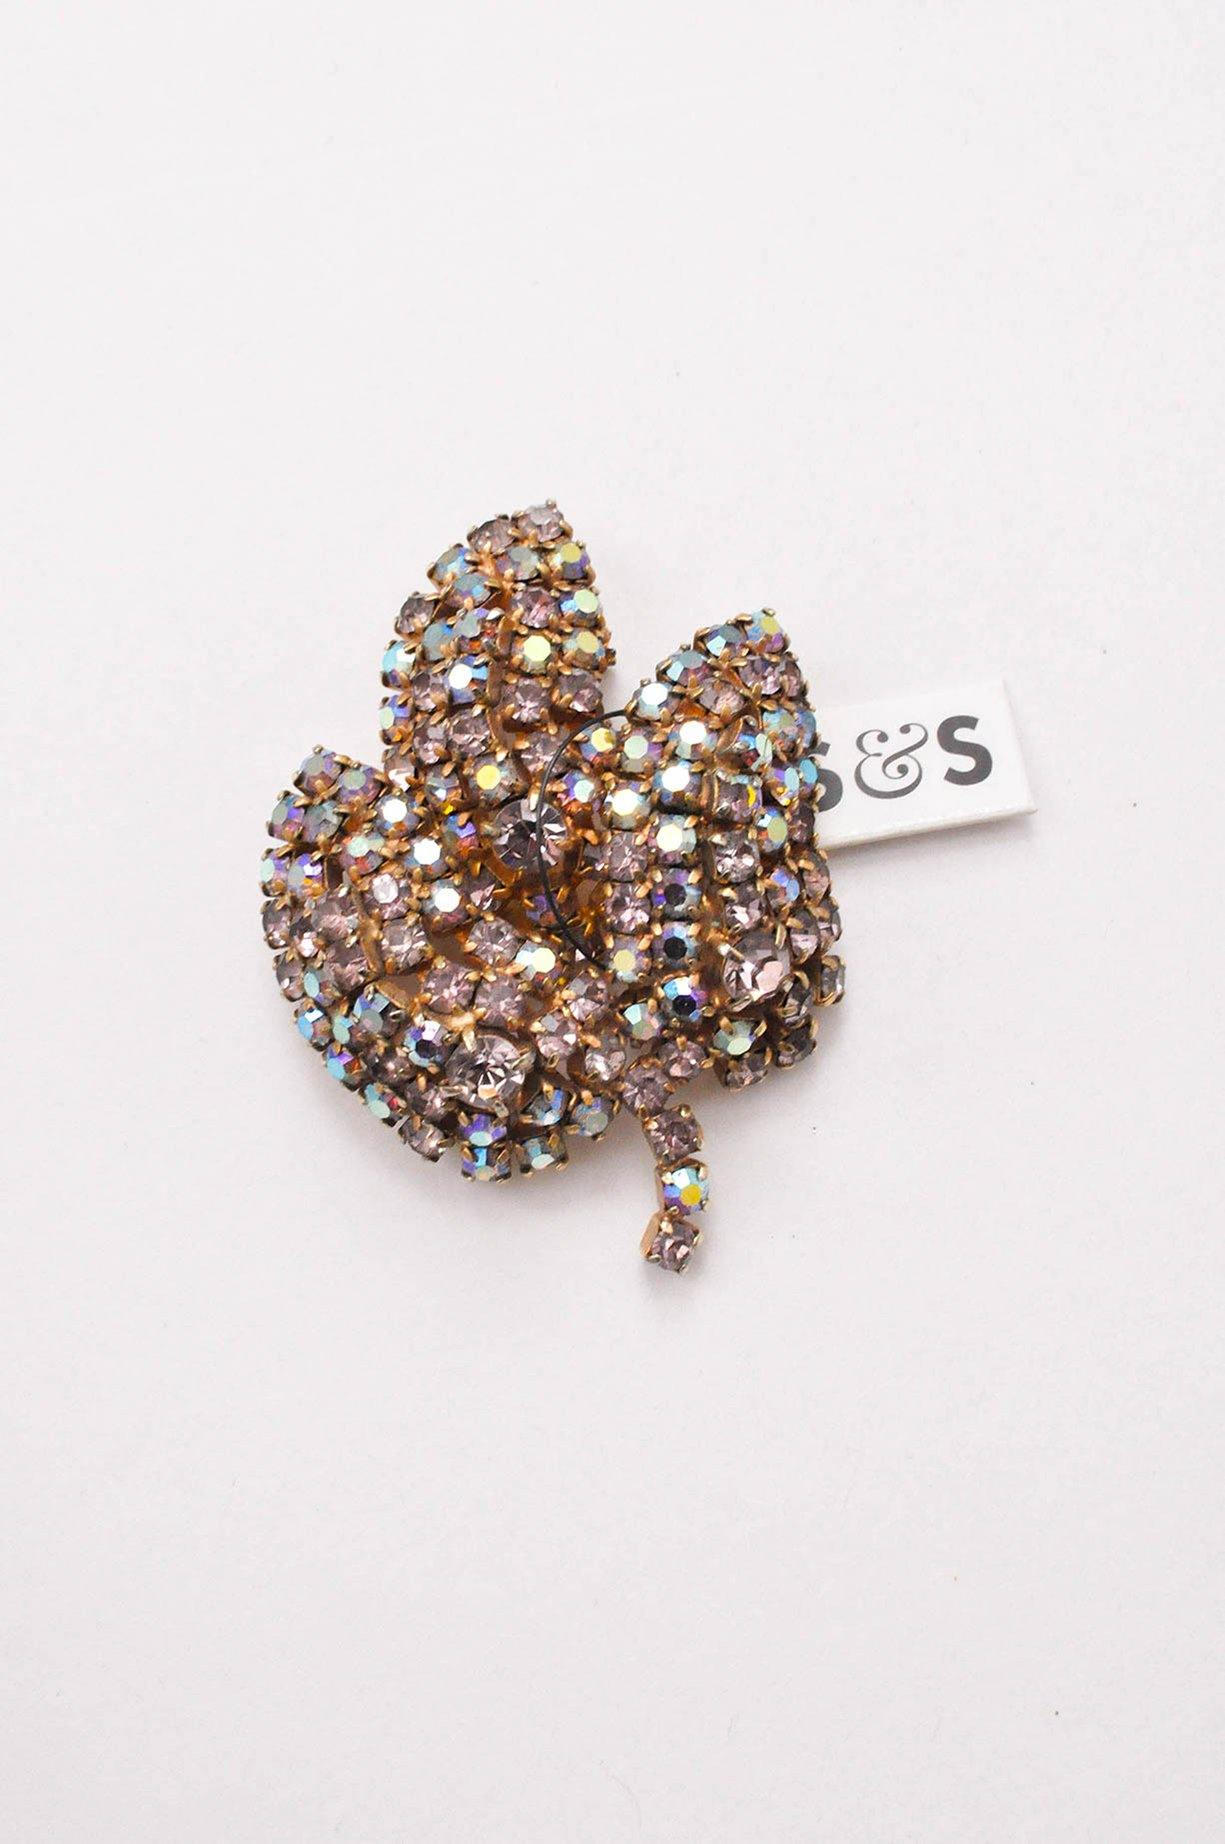 Rhinestone leaf brooch from Sweet & Spark.